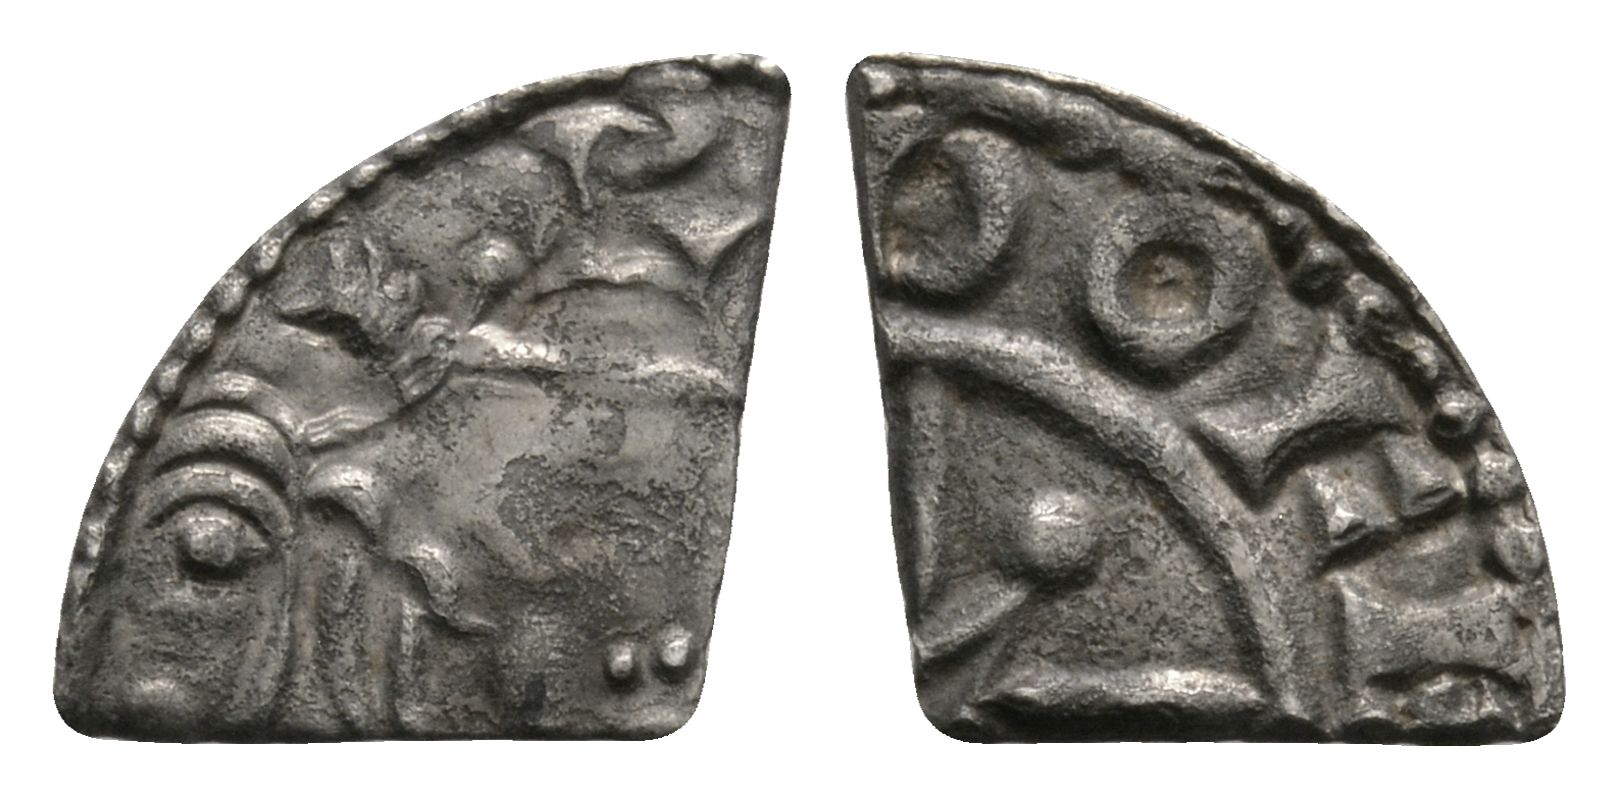 Anglo-Saxon Coins - Harthacnut (in name of Cnut) - Dover / Boga - Arm and Sceptre Cut Farthing